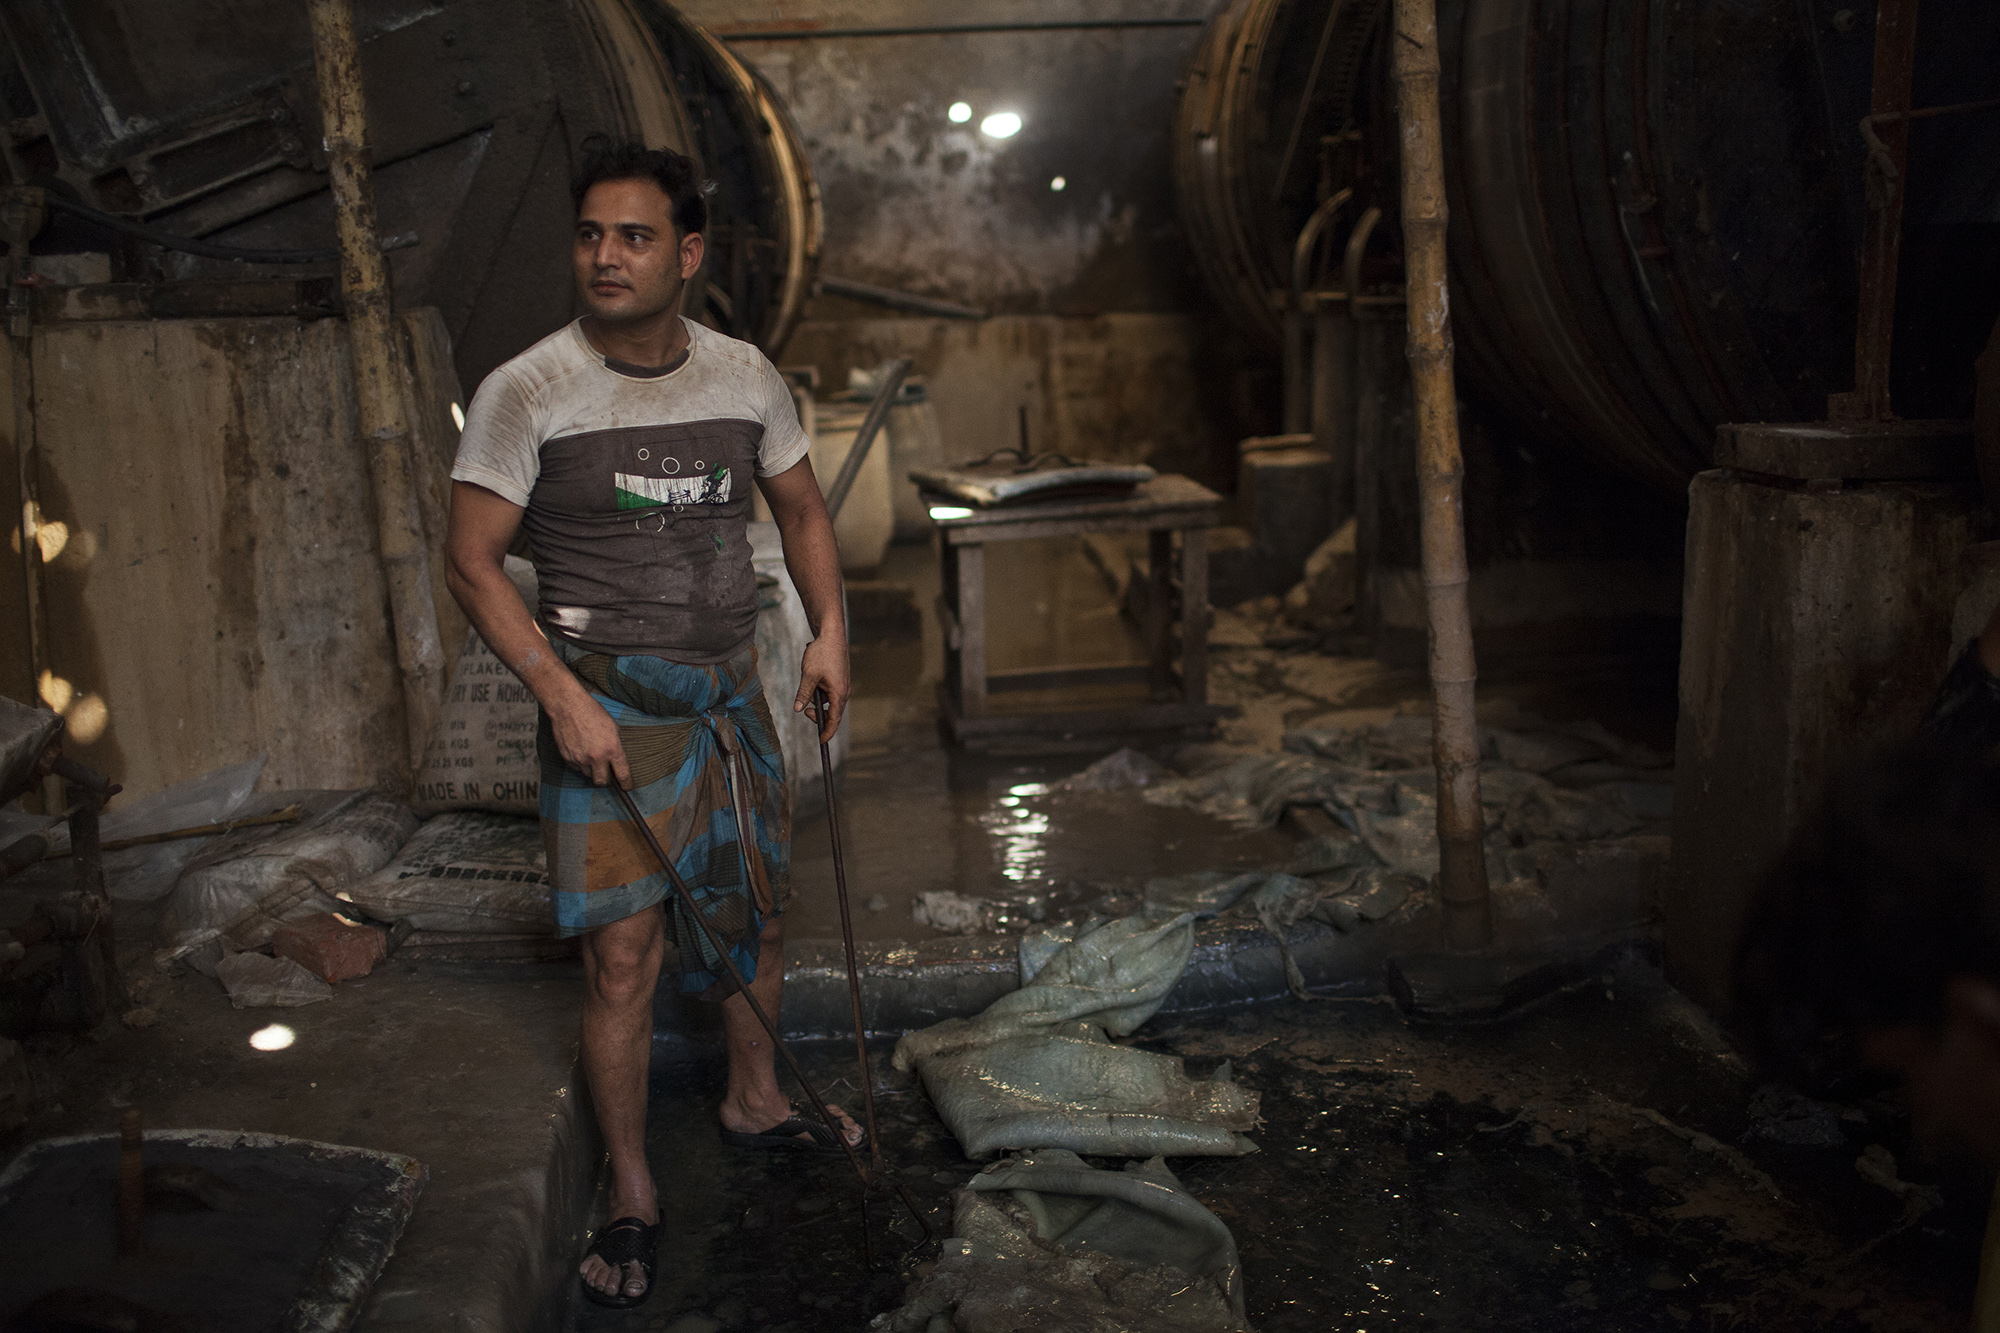 Shofiko Islam, 40, helps place cattle hides into a metal drum where the hides are treated with over 100 chemicals in a tannery in the Hazaribagh district of Dhaka, Bangladesh. (Credit: Will Baxter)